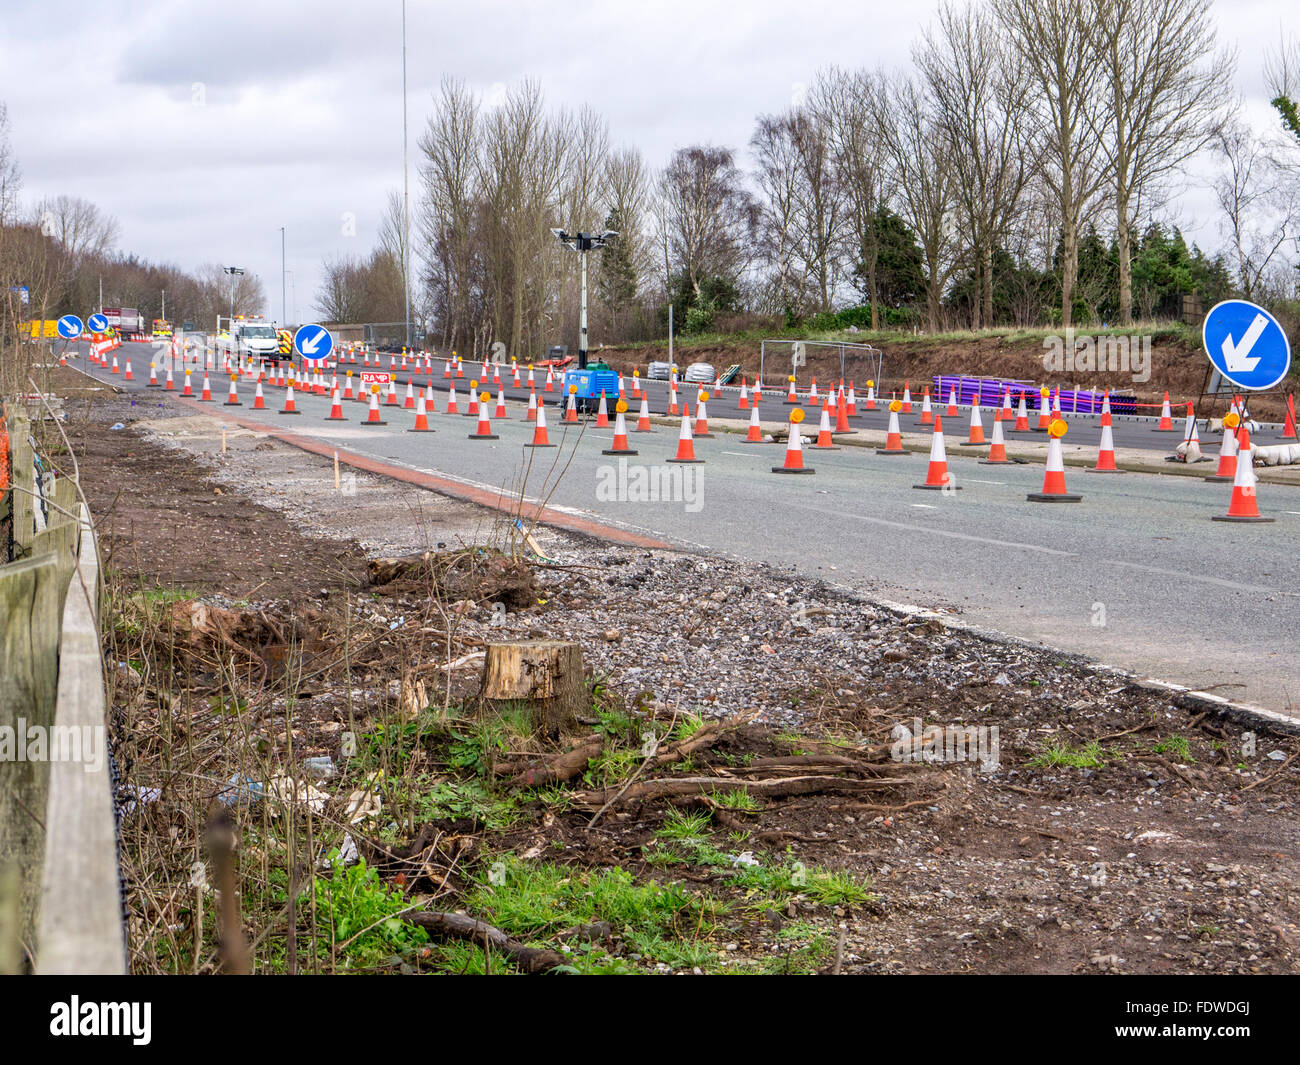 Coned off area of a road with construction vans in the distance - Stock Image